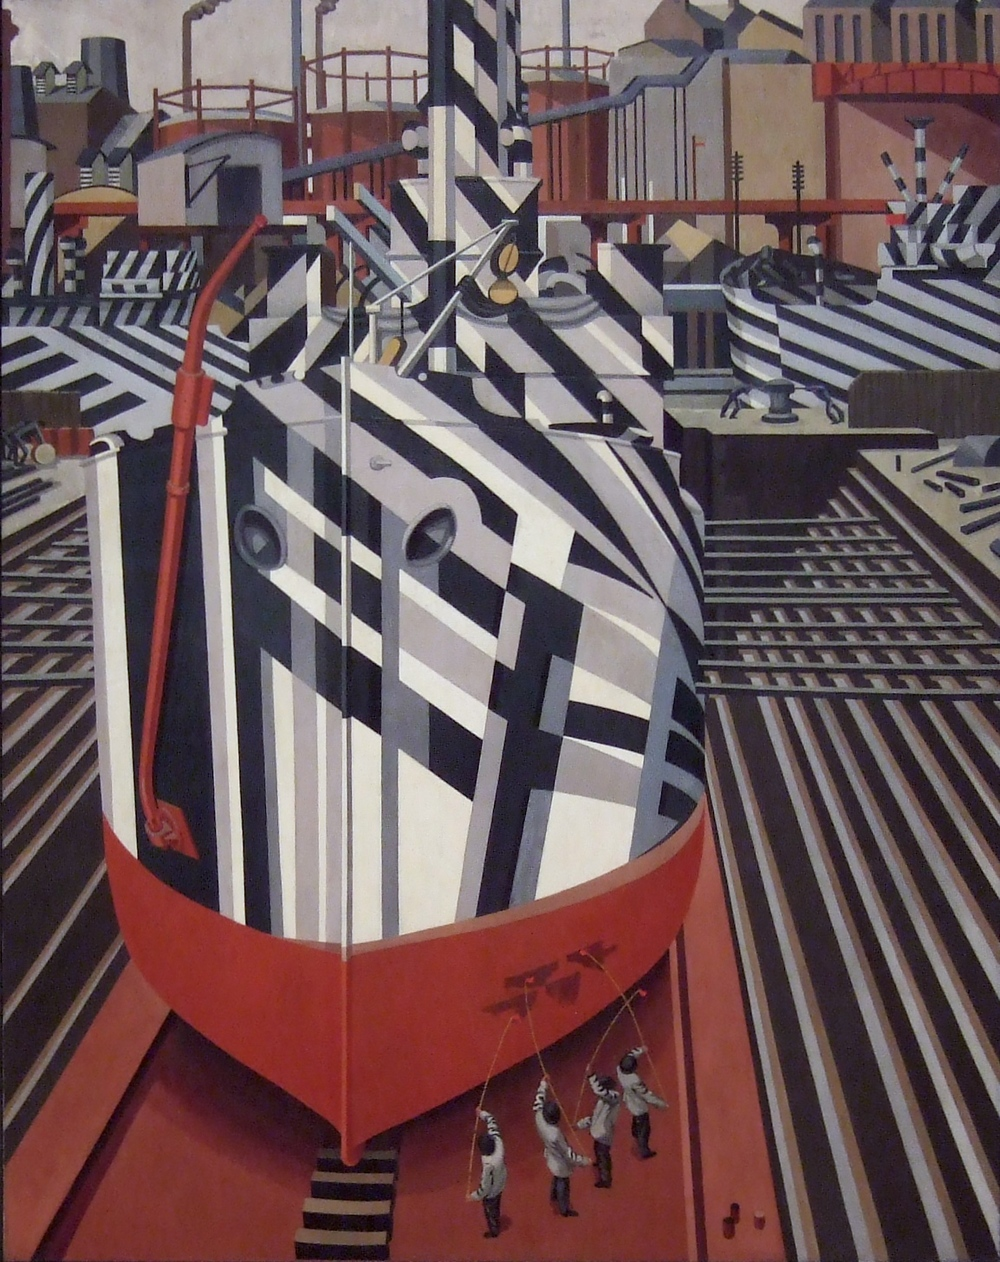 Dazzle-ships_in_Drydock_at_Liverpool.jpg